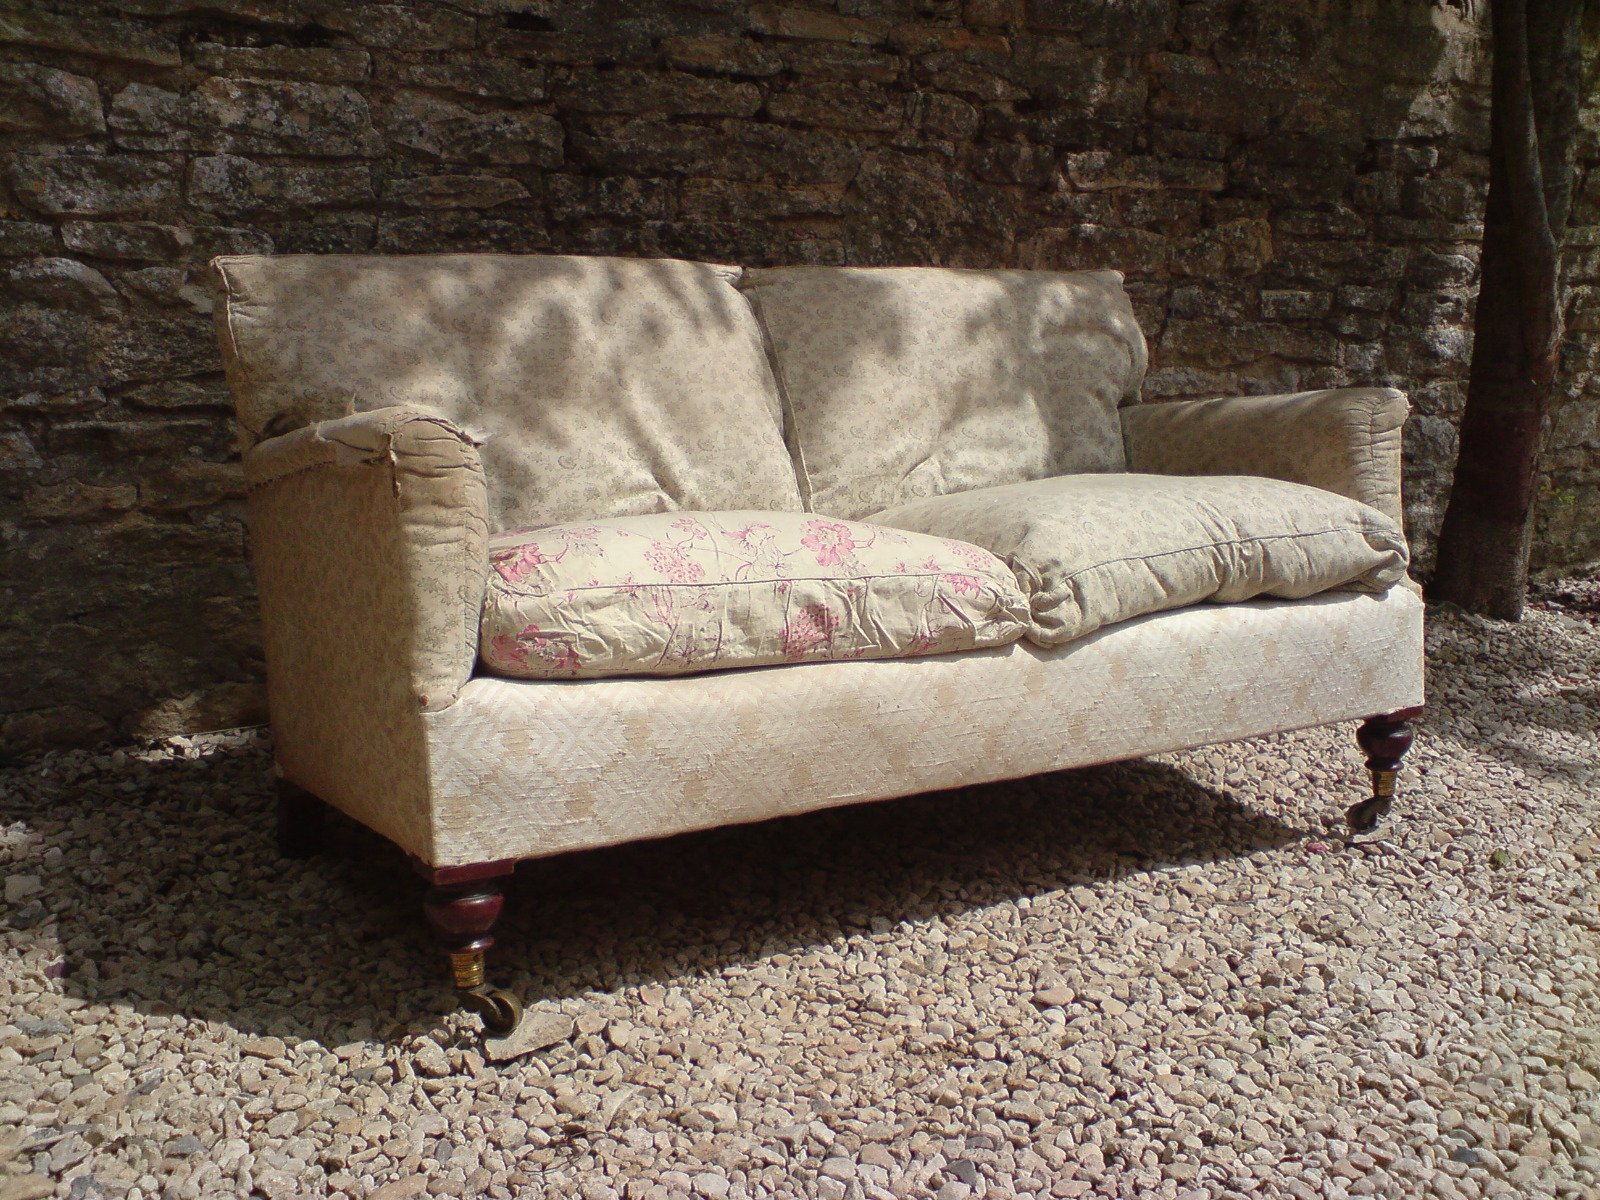 how do you say sofa cama in english unusual sofas australia antique hares antiques